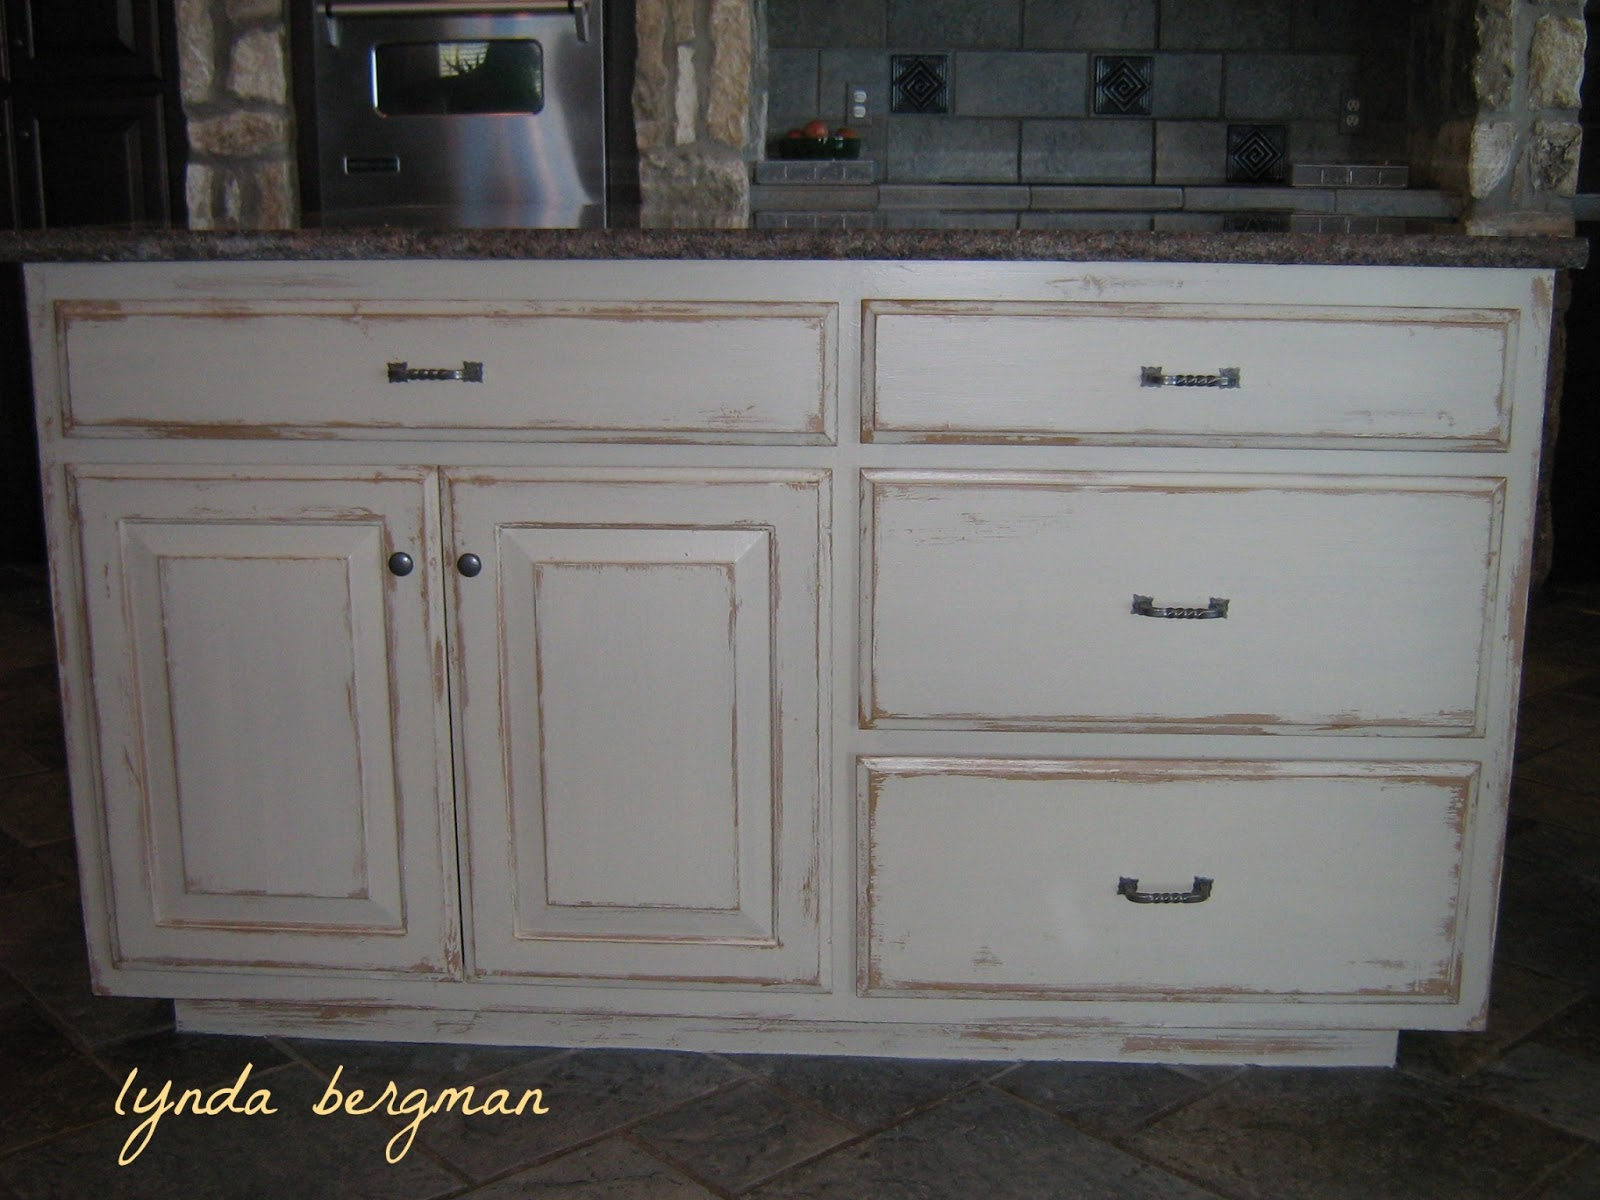 LYNDA BERGMAN DECORATIVE ARTISAN: WHITE KITCHEN CABINETS